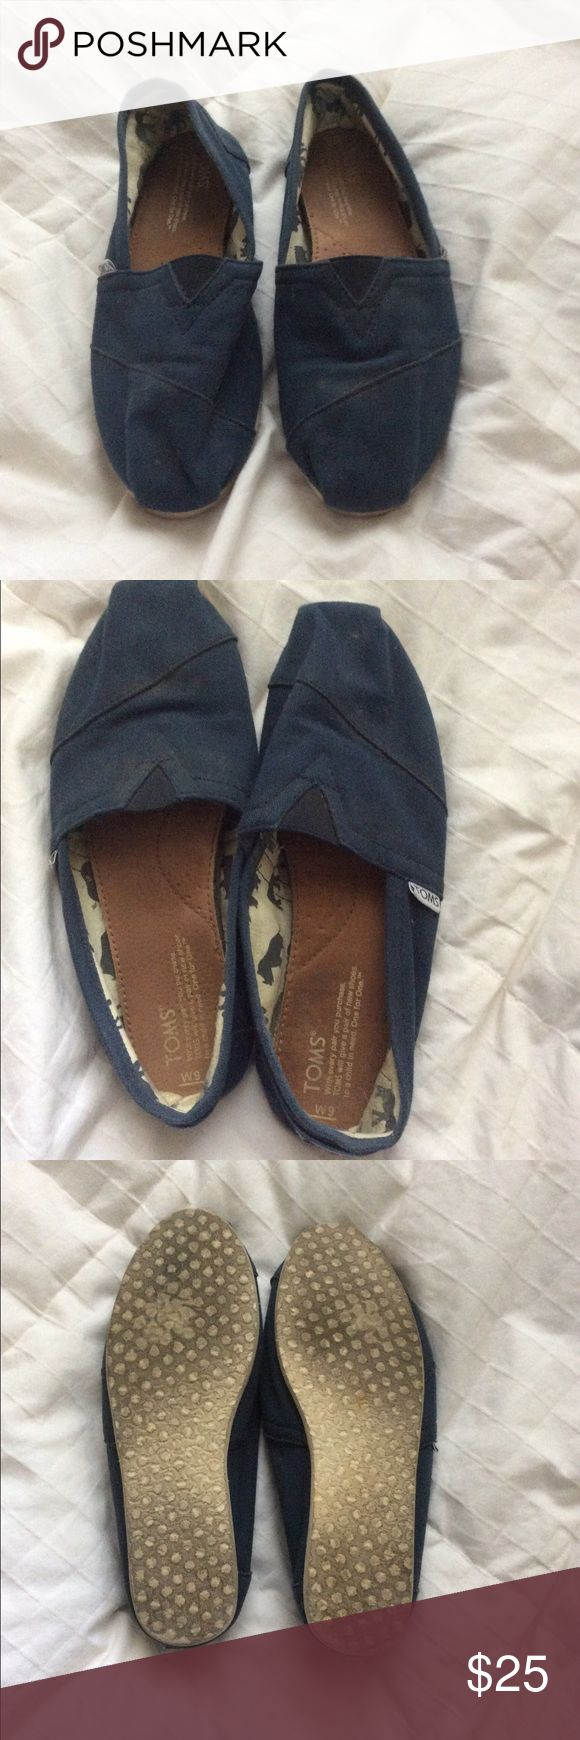 Navy Blue Toms Gently used tons worn at most 3 times! The sole on the inside is like new, just a little dusty on the outside since I never wear them, they were my first toms and were just slightly too big! Any questions feel free to ask! TOMS Shoes Flats & Loafers